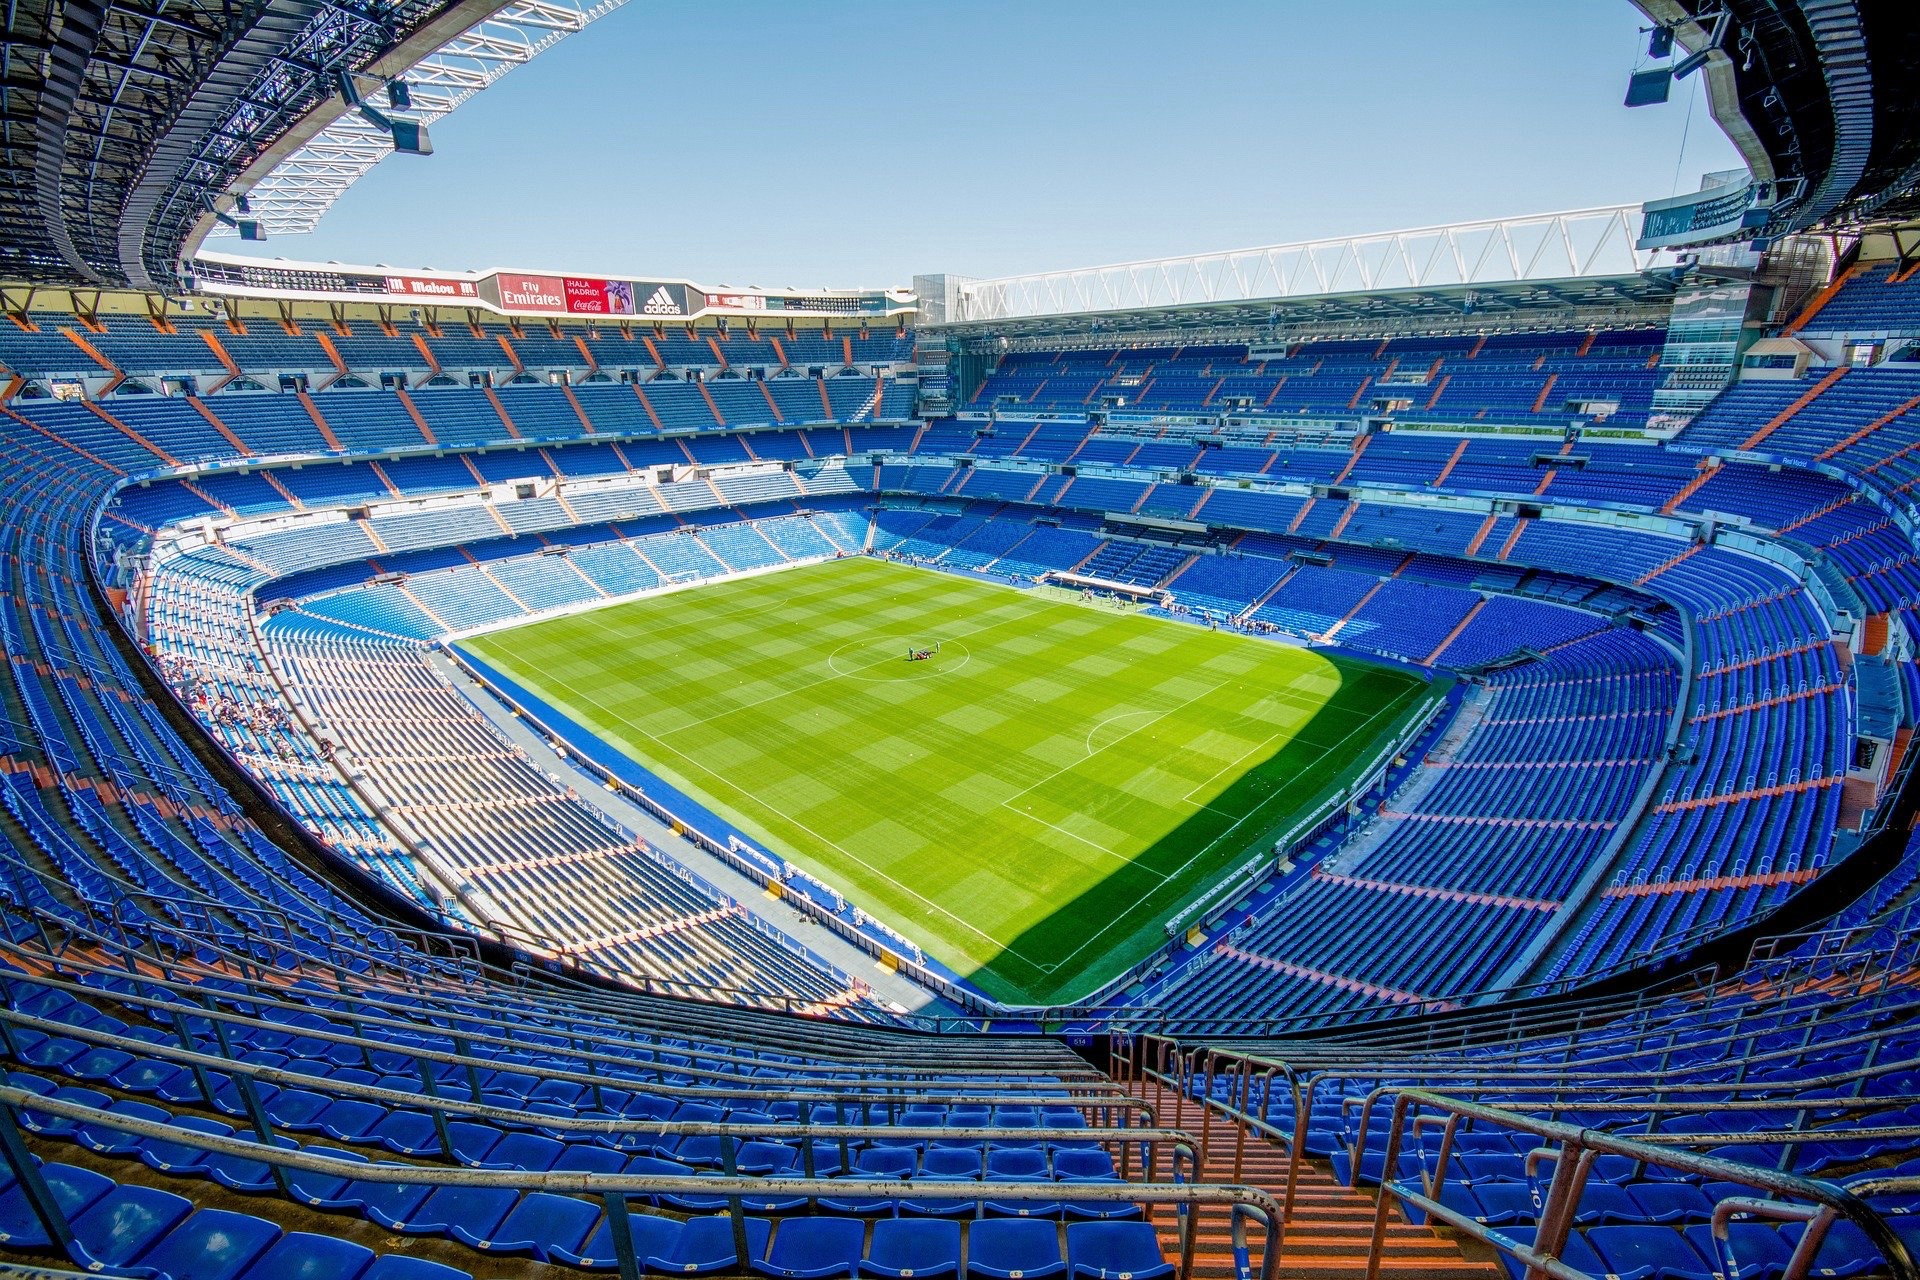 Estadio Bernabéu in Madrid